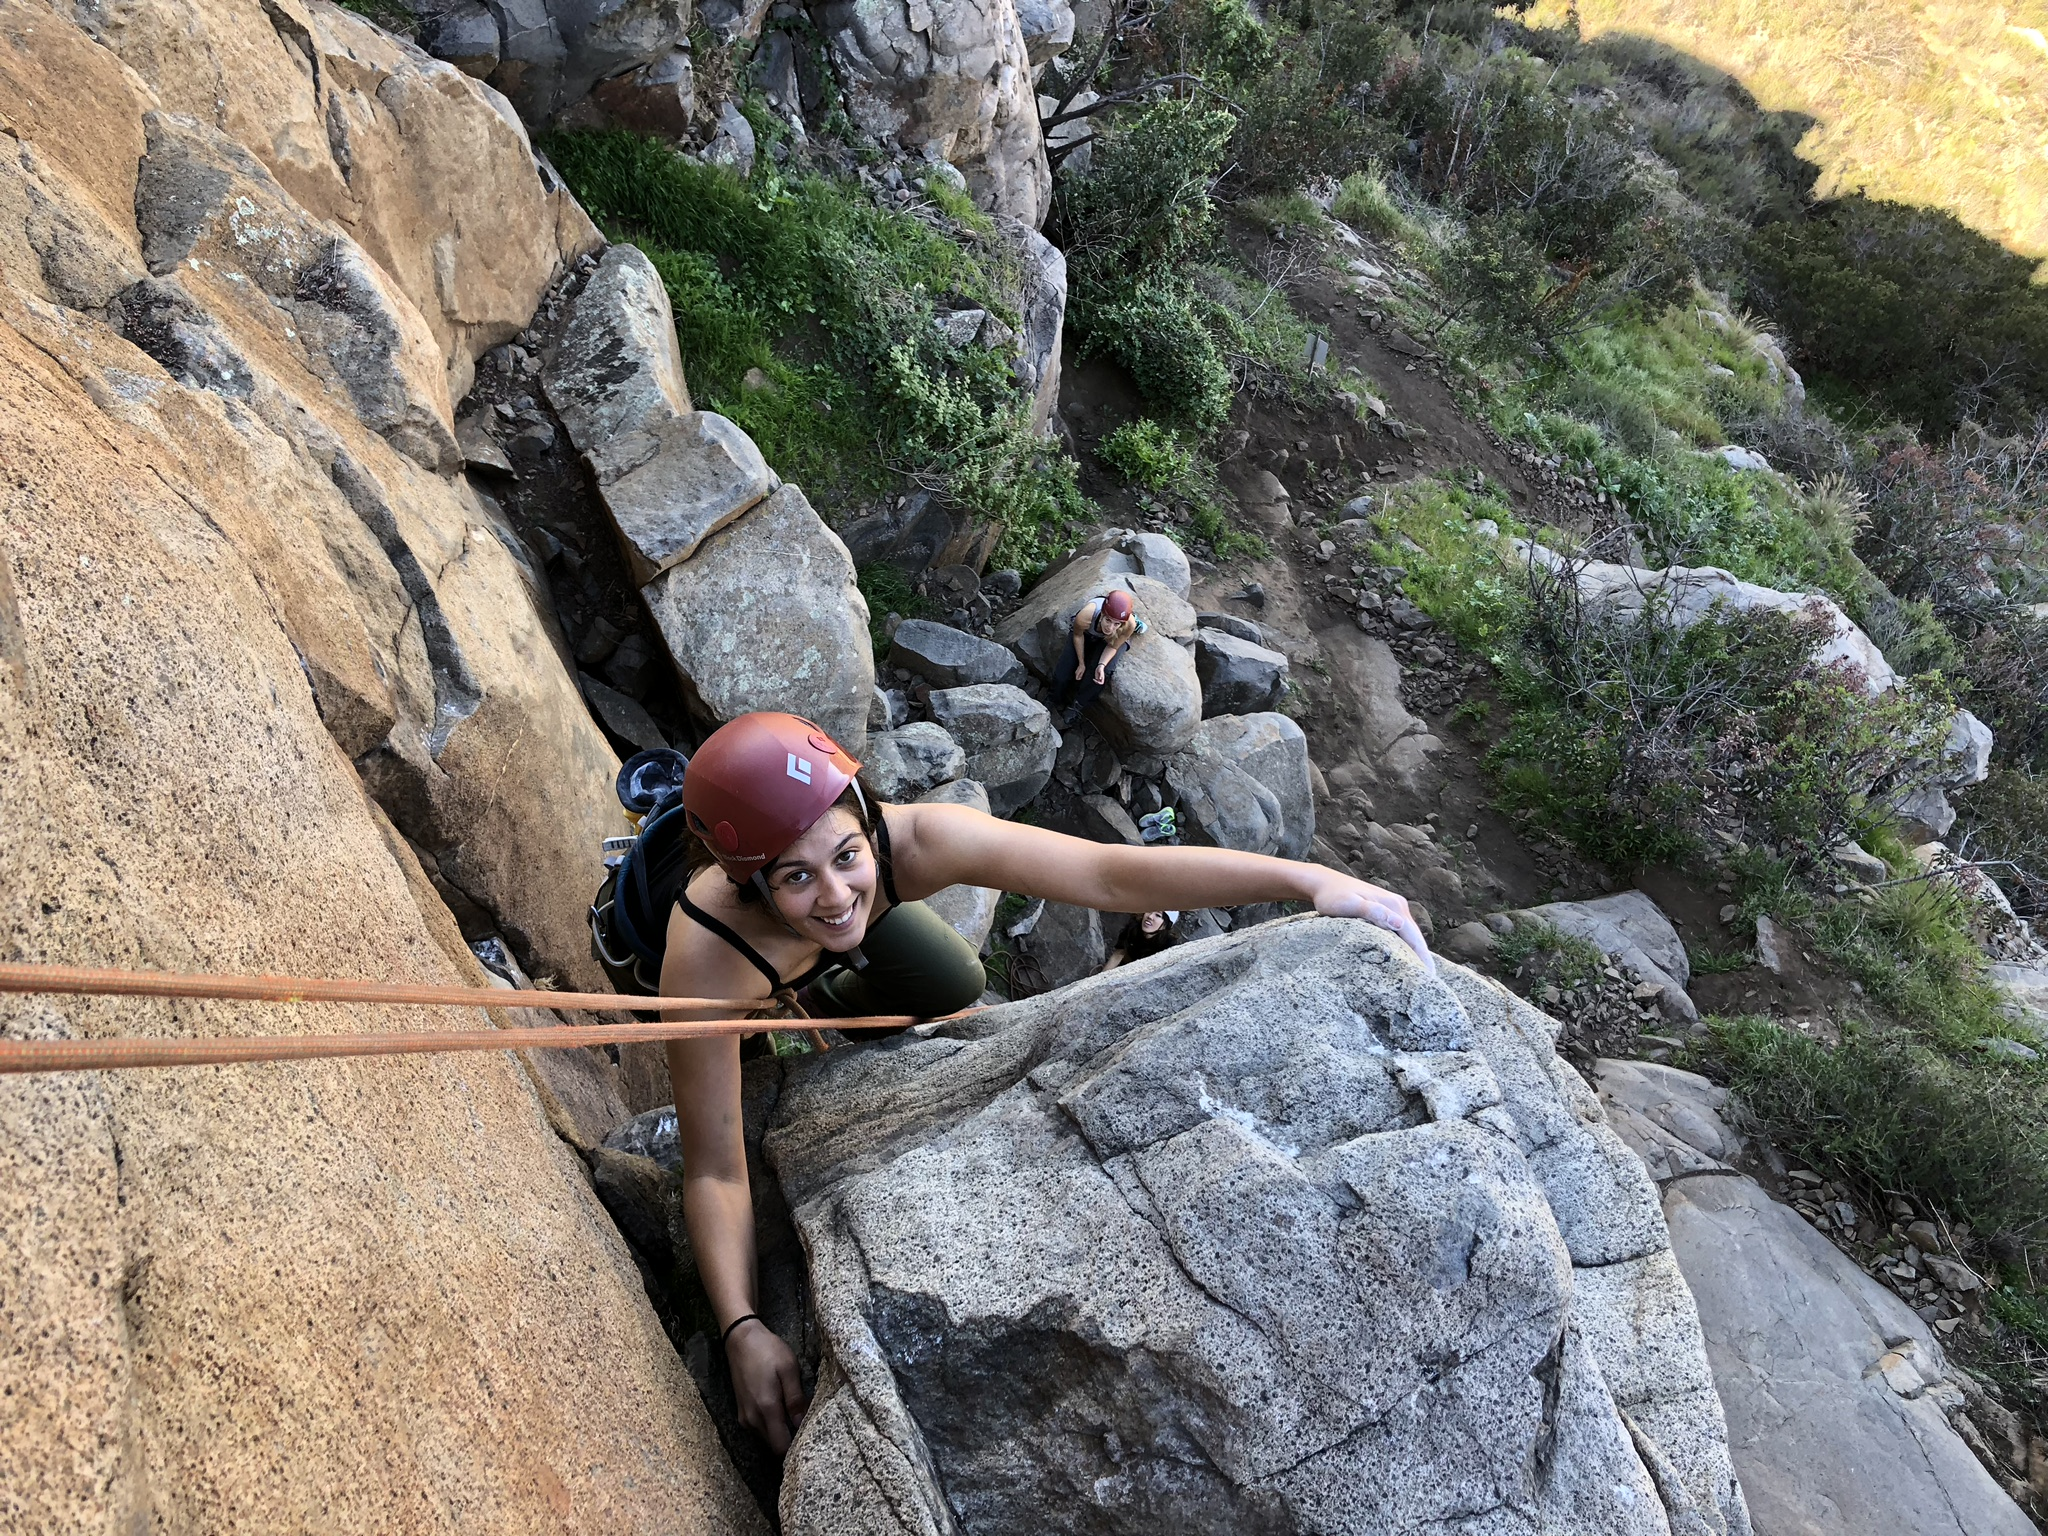 Julia Cupat Ladies Weekend Out Golden State Guiding Mission Gorge Rock Climbing